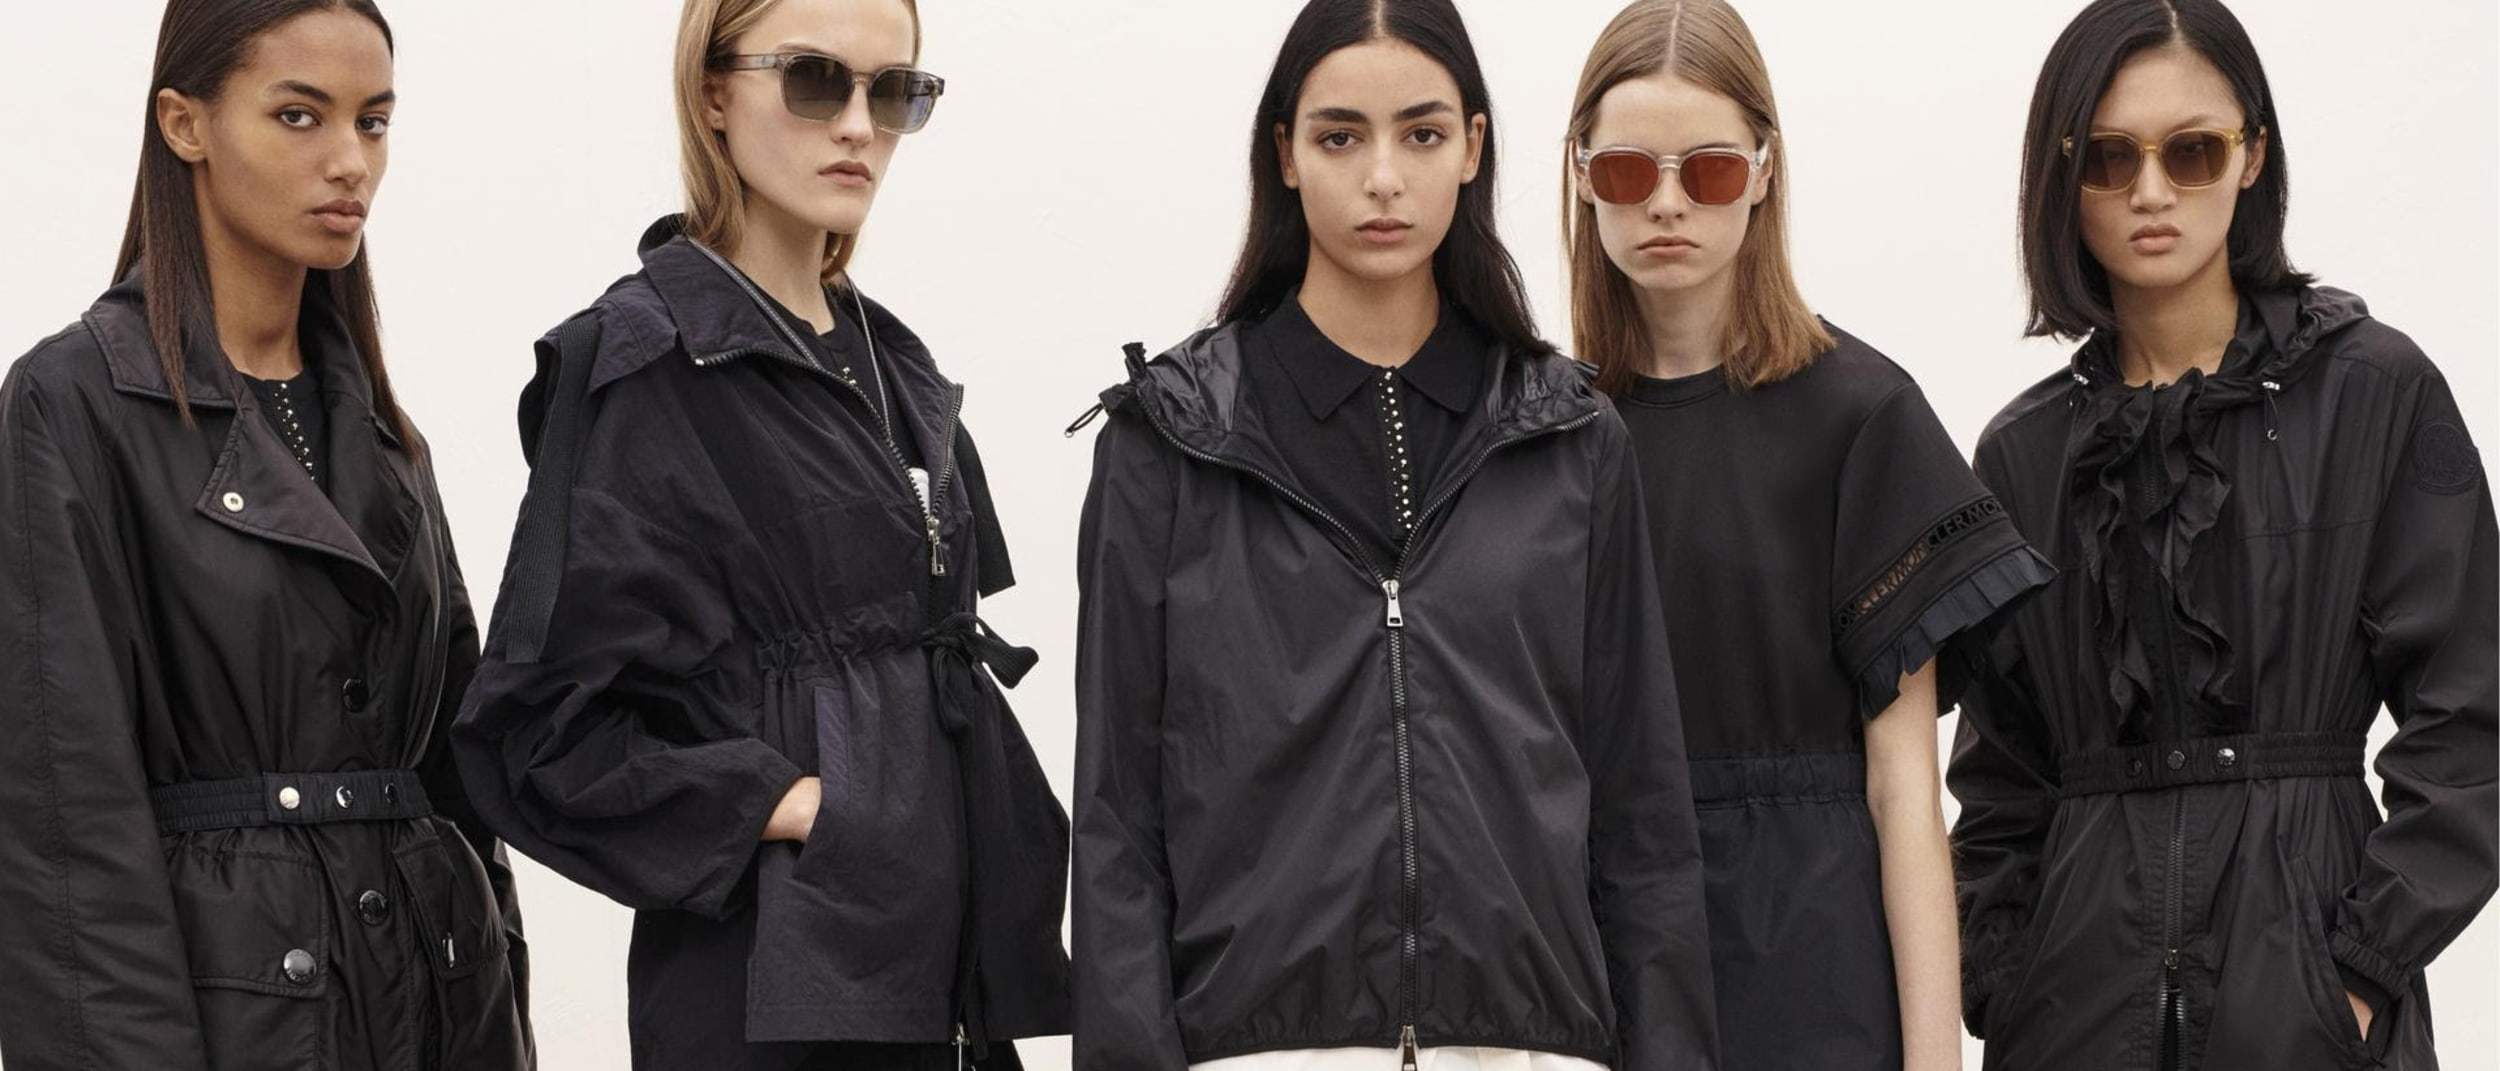 Moncler 2020 Collection - Minimal Chic